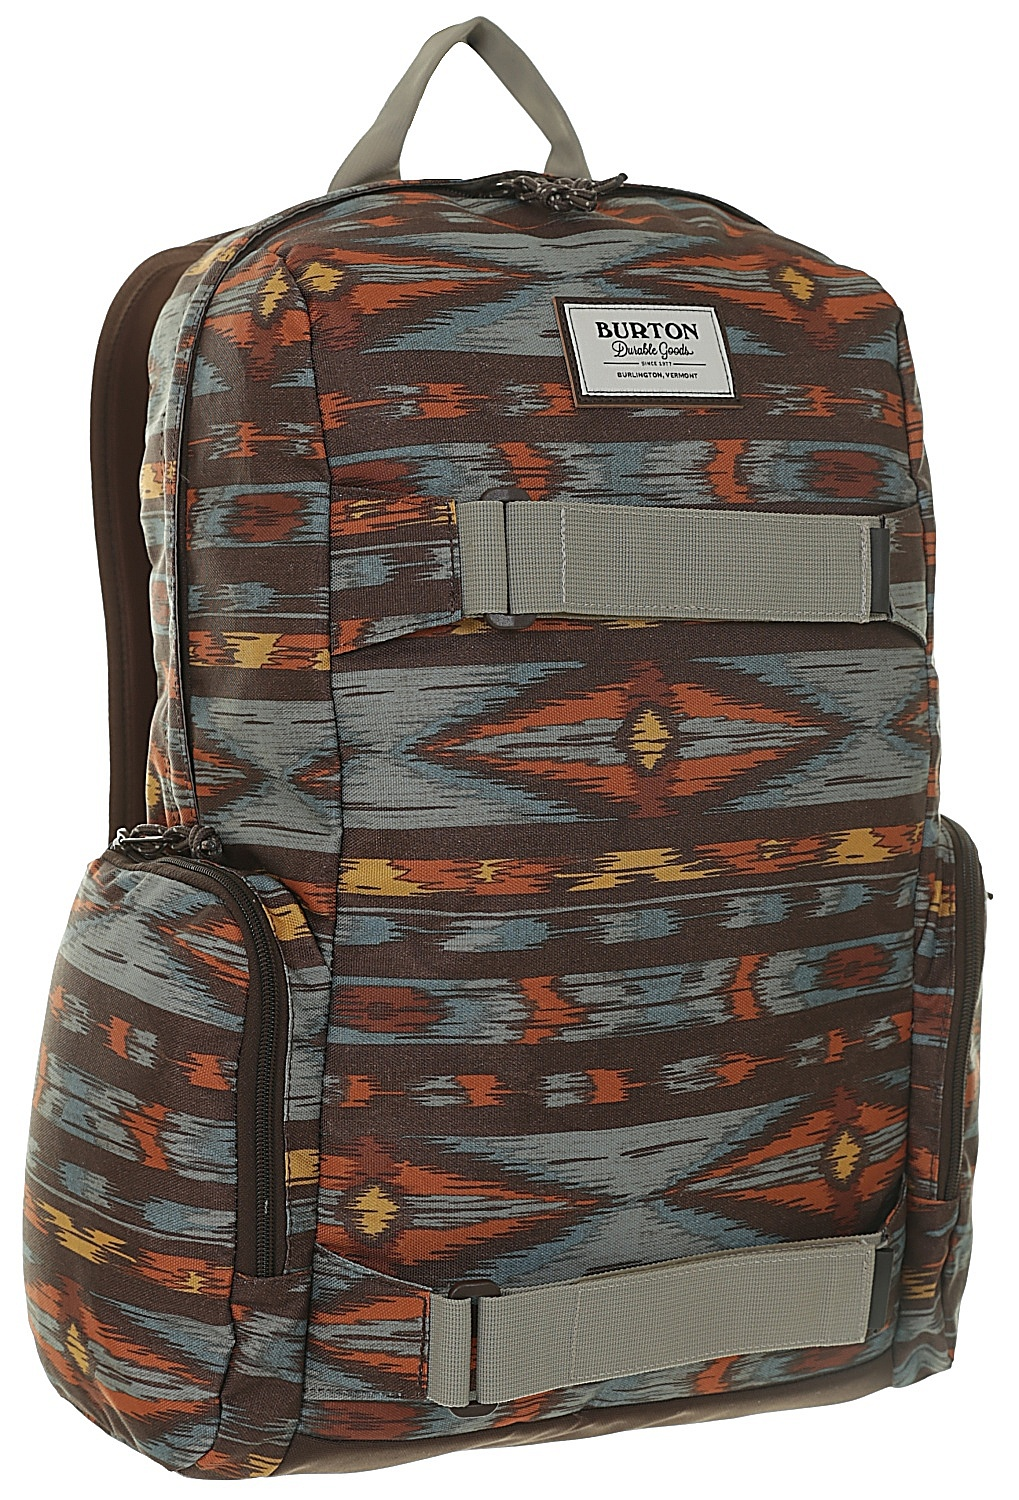 71bb917bfc batoh Burton Emphasis - Painted Ikat Print 26 L